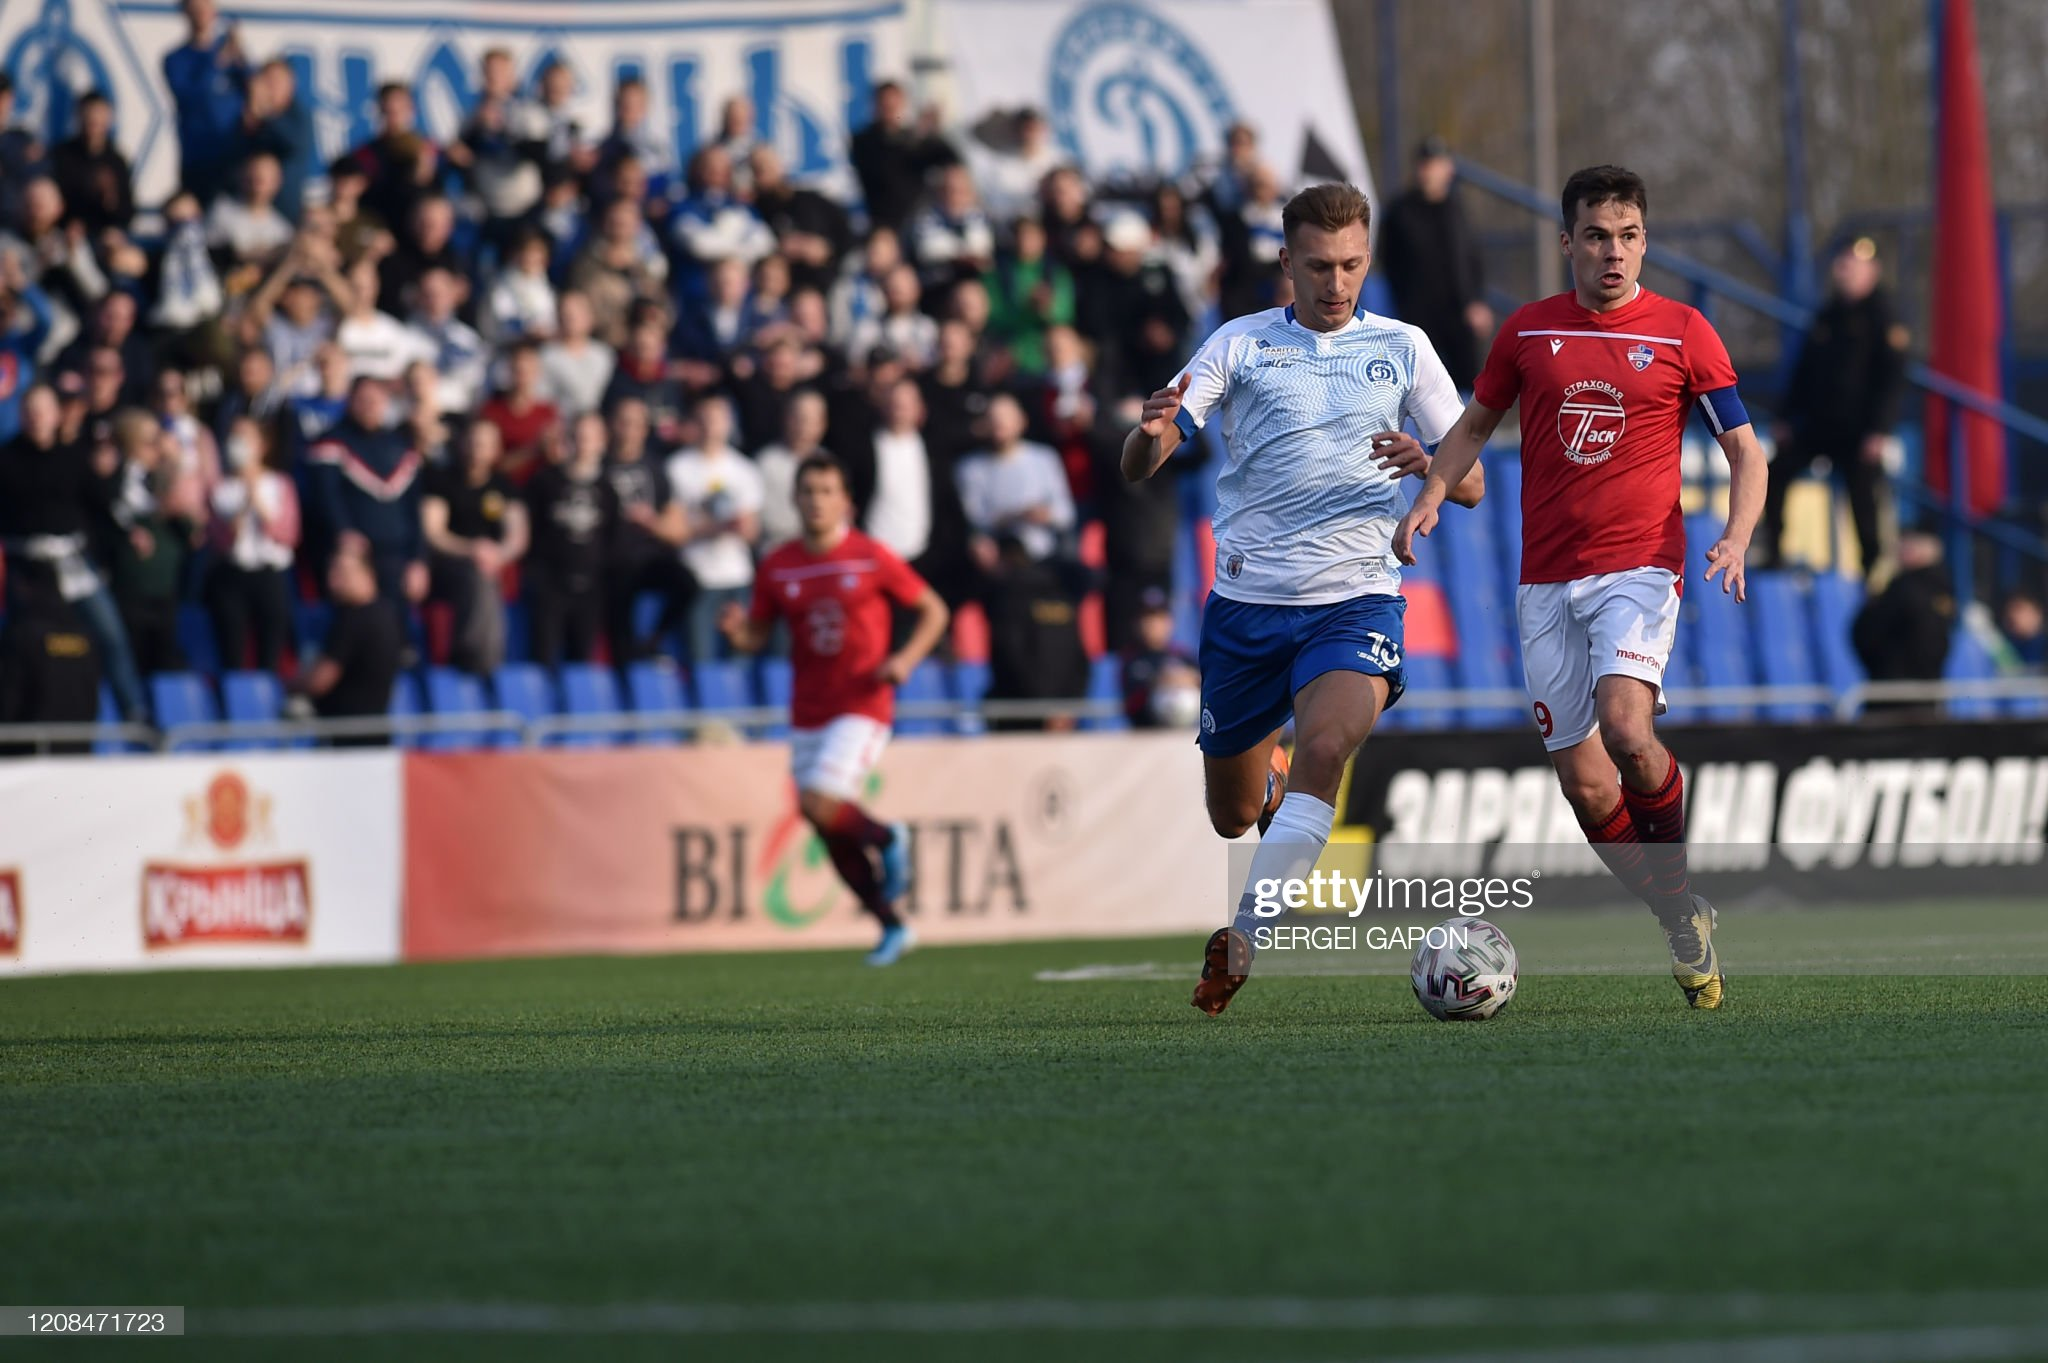 Dinamo Minsk v Torpedo Zhodino Preview, prediction and odds